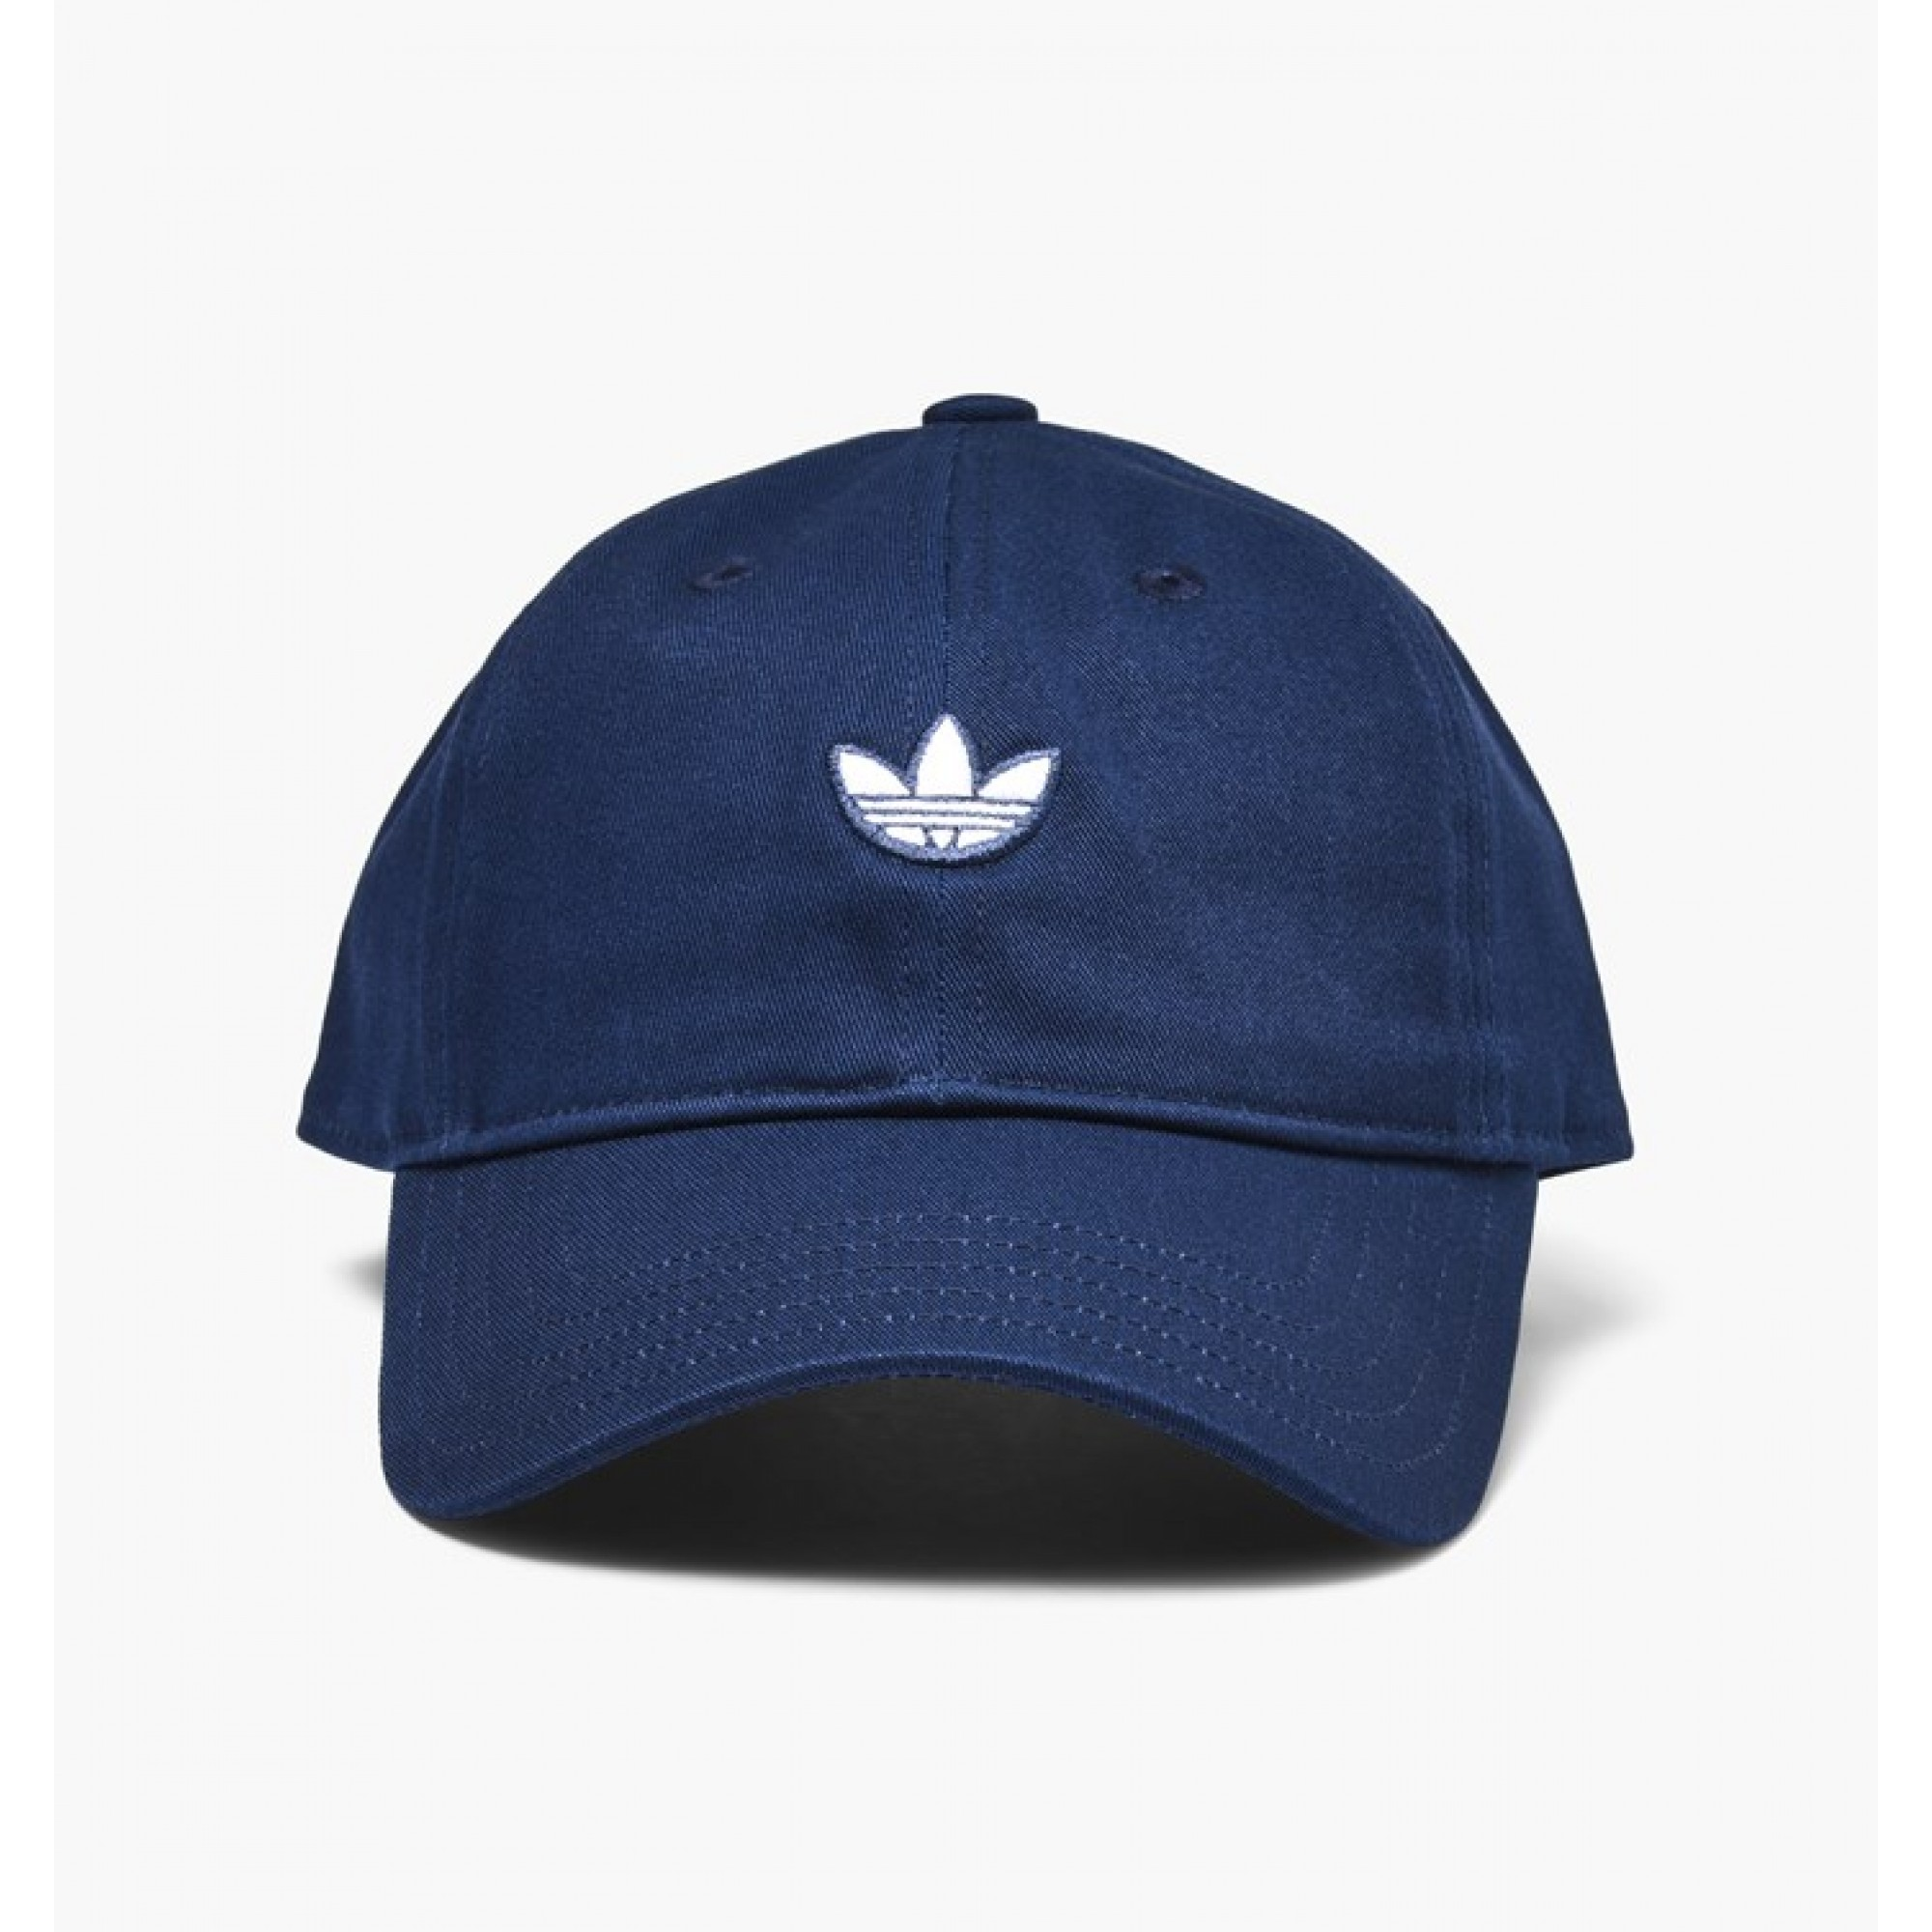 28a716257 Men's Adidas Originals Samstag Dad Cap in Blue | DU6800